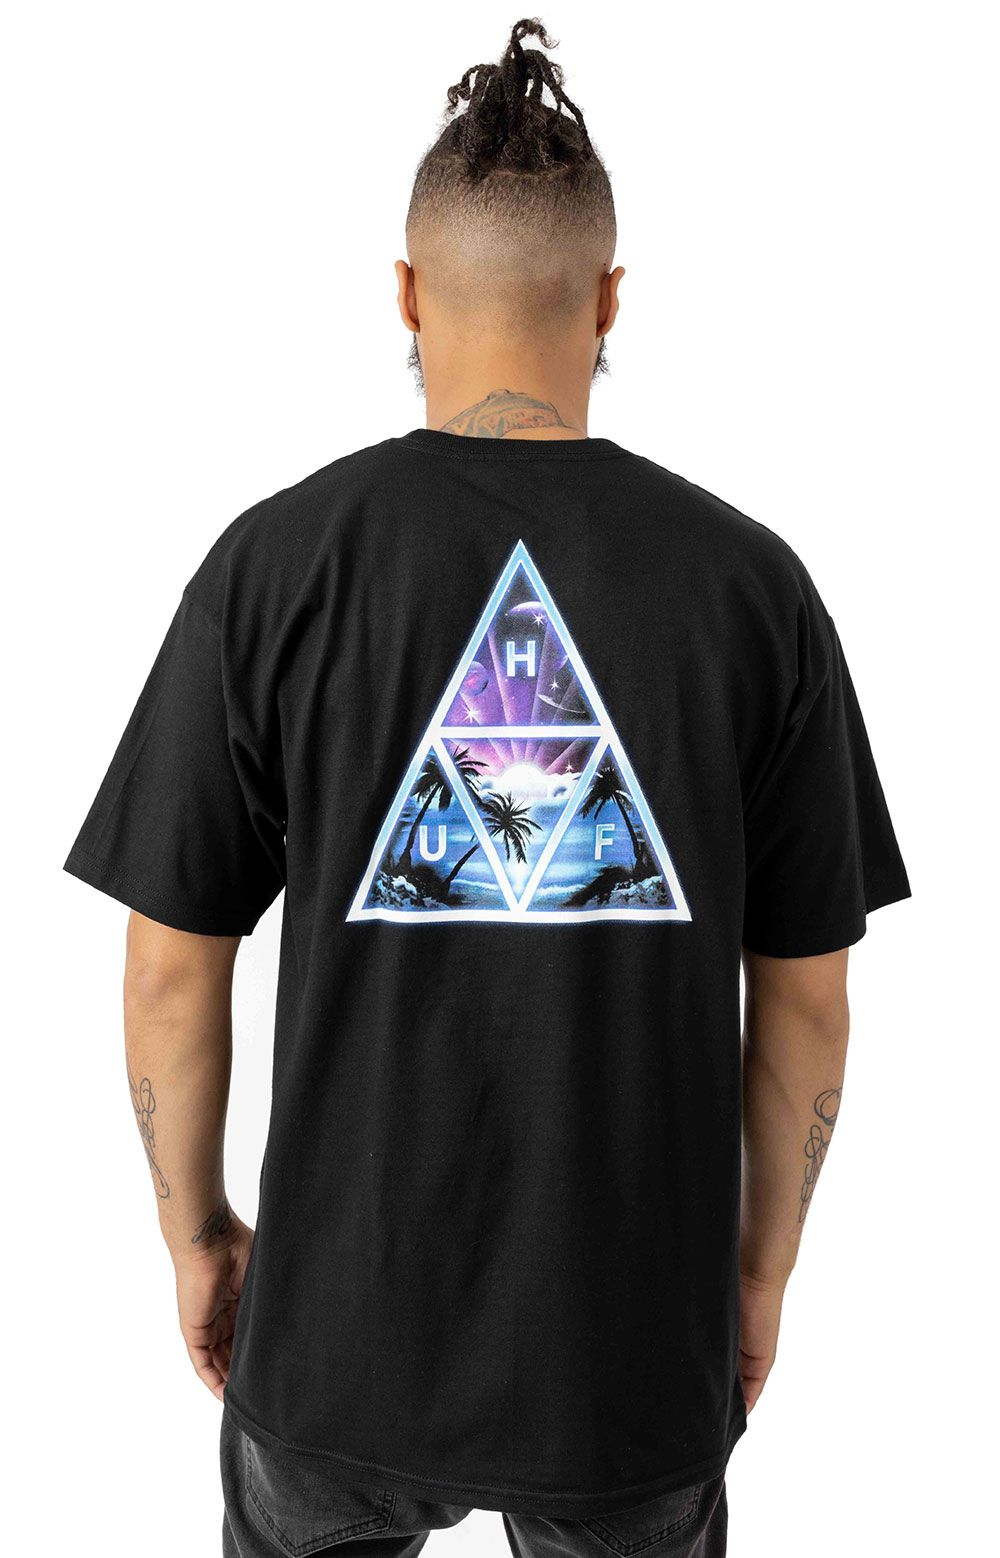 Space Beach TT T-Shirt - Black